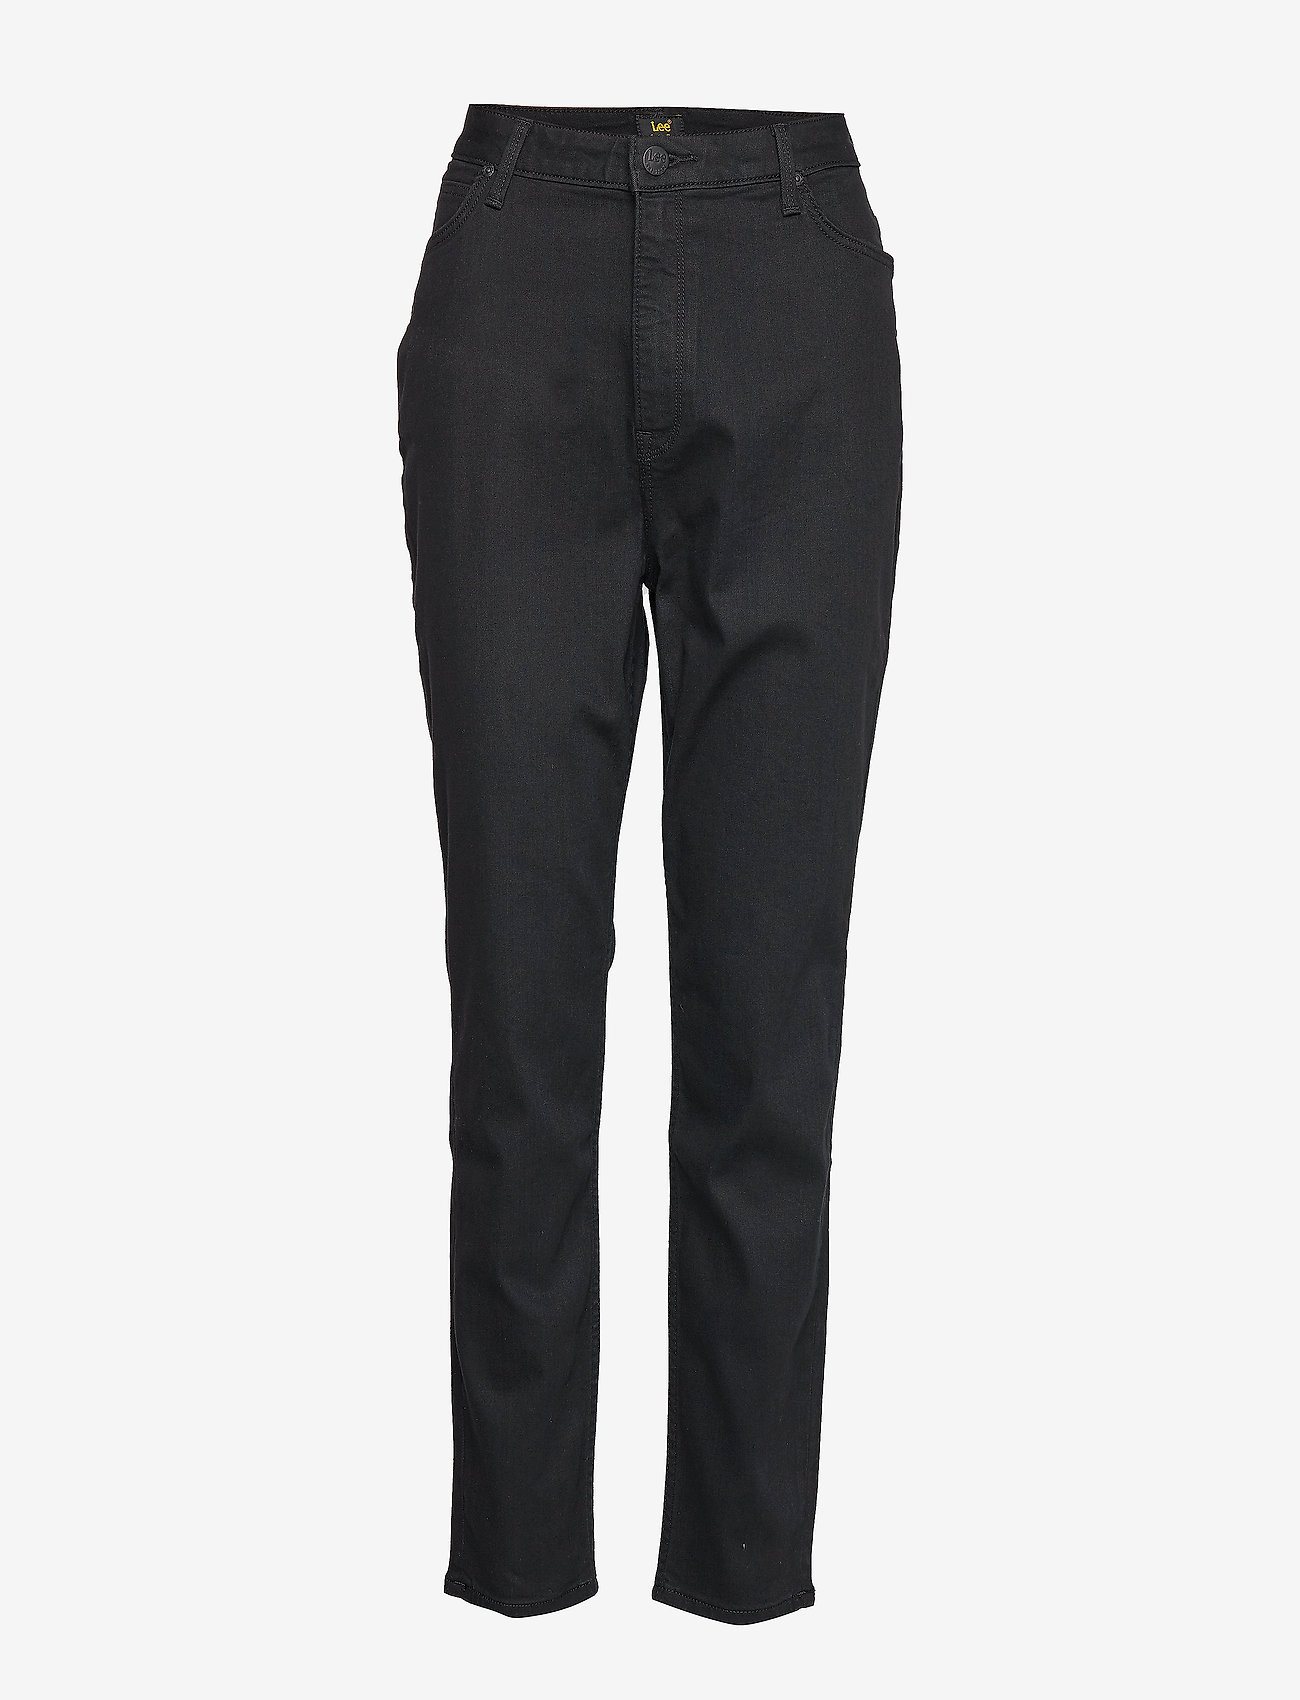 Lee Jeans - SCARLETT HIGH - pantalons droits - black rinse - 0